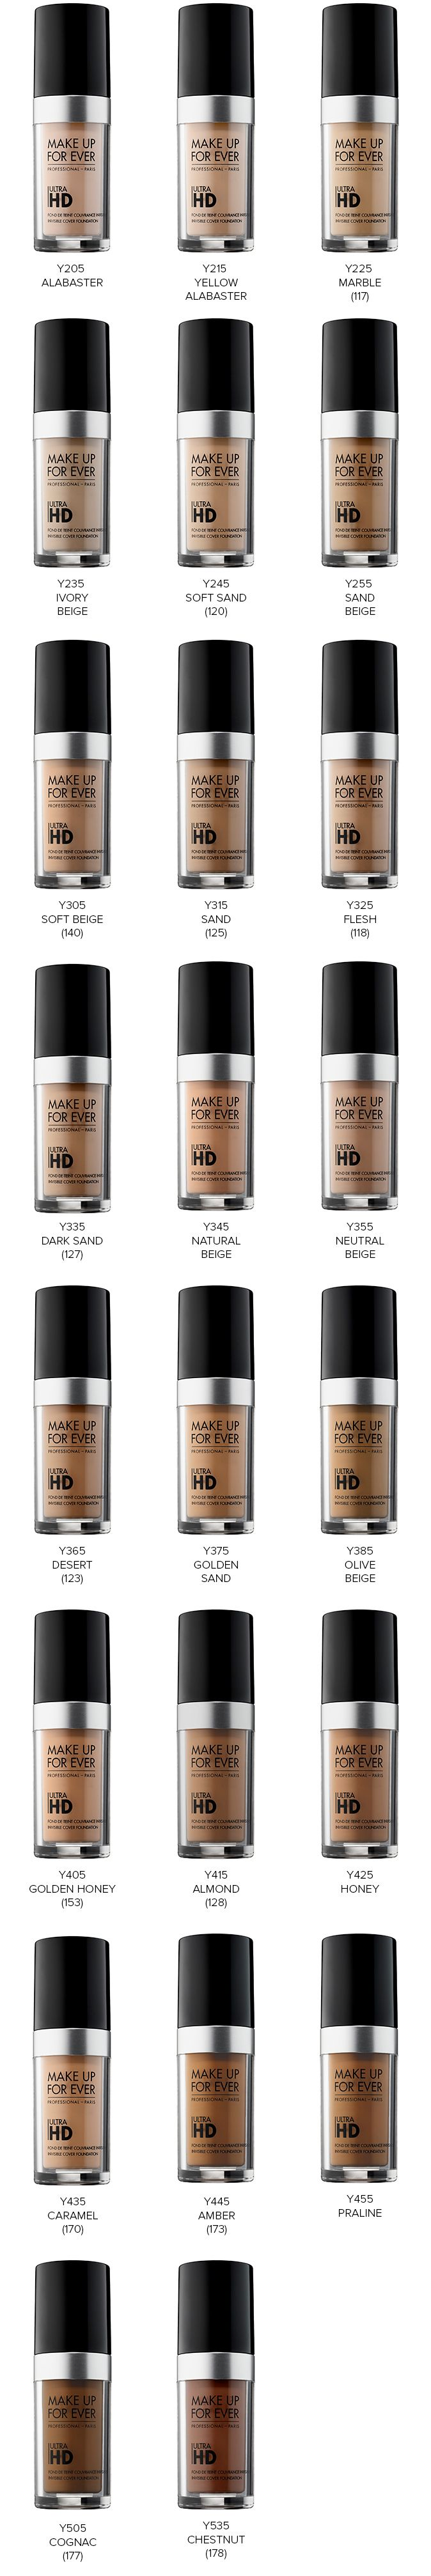 Make Up For Ever Ultra HD Foundation launching soon in 40 shades